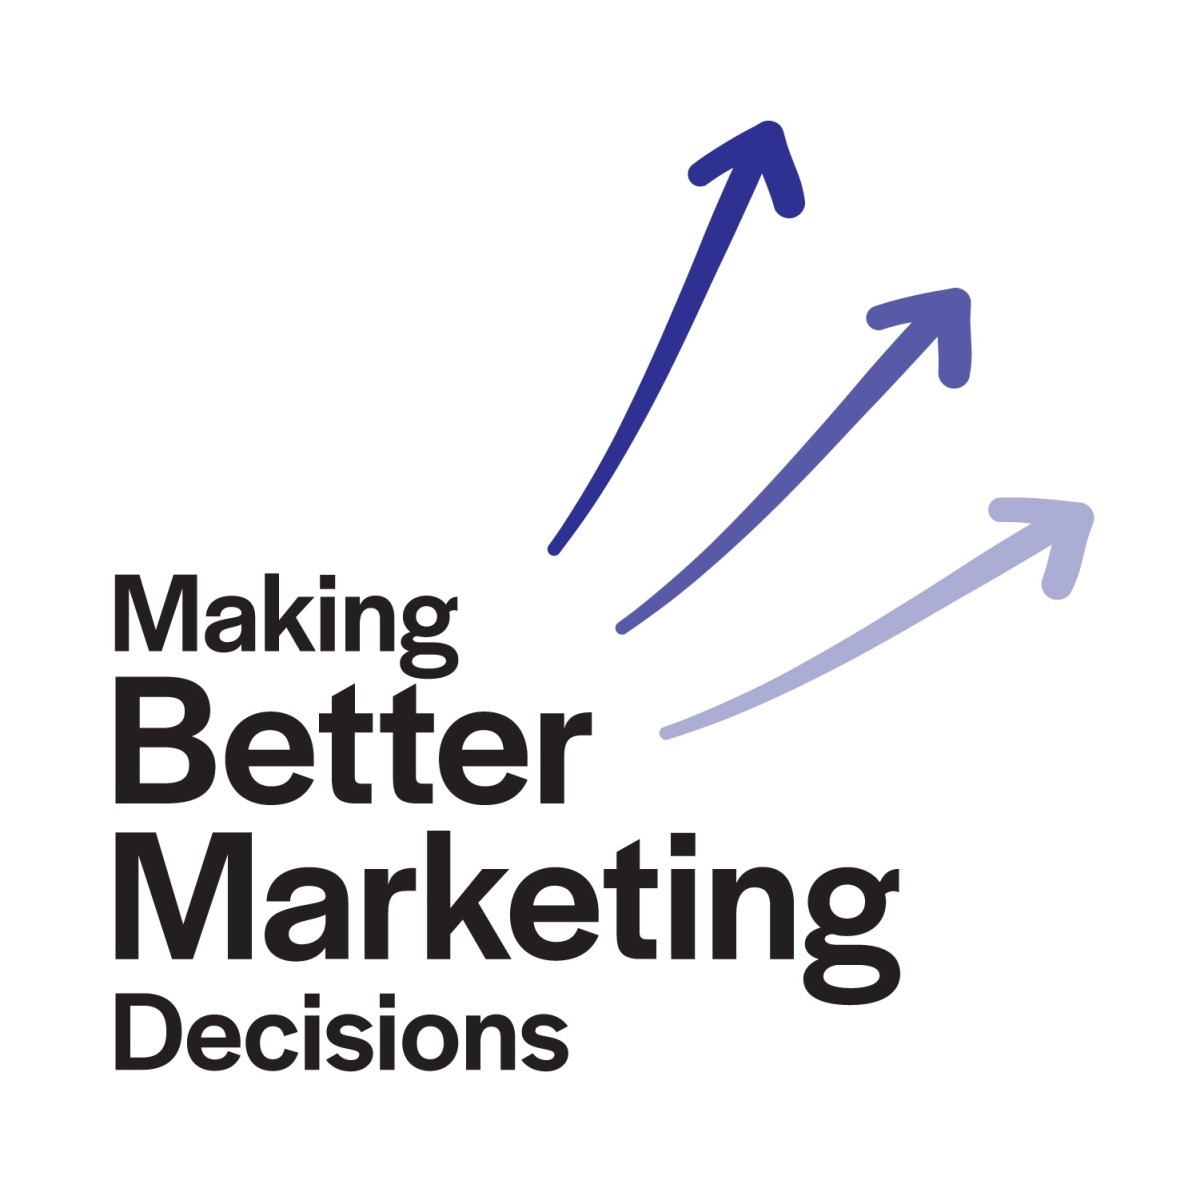 Make Better Marketing Decisions